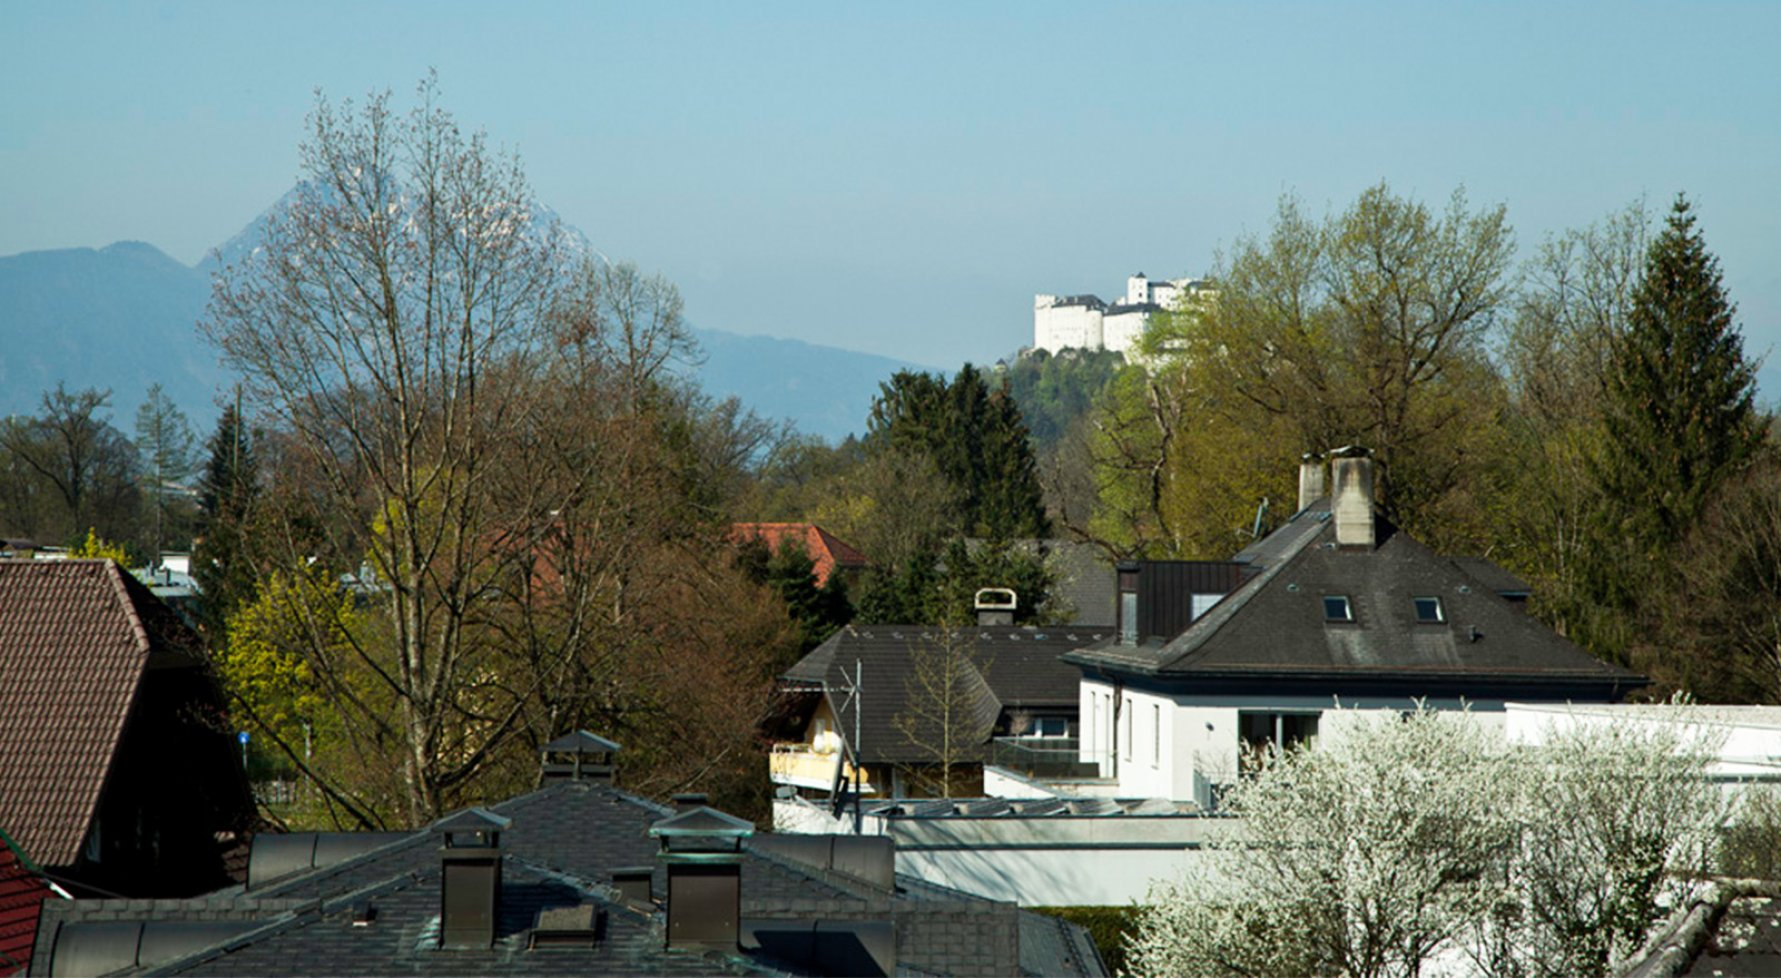 Property in 5020 Salzburg - Premium location Aigen: True greatness with panoramic views! Elegant gallery penthouse in a top location - picture 1